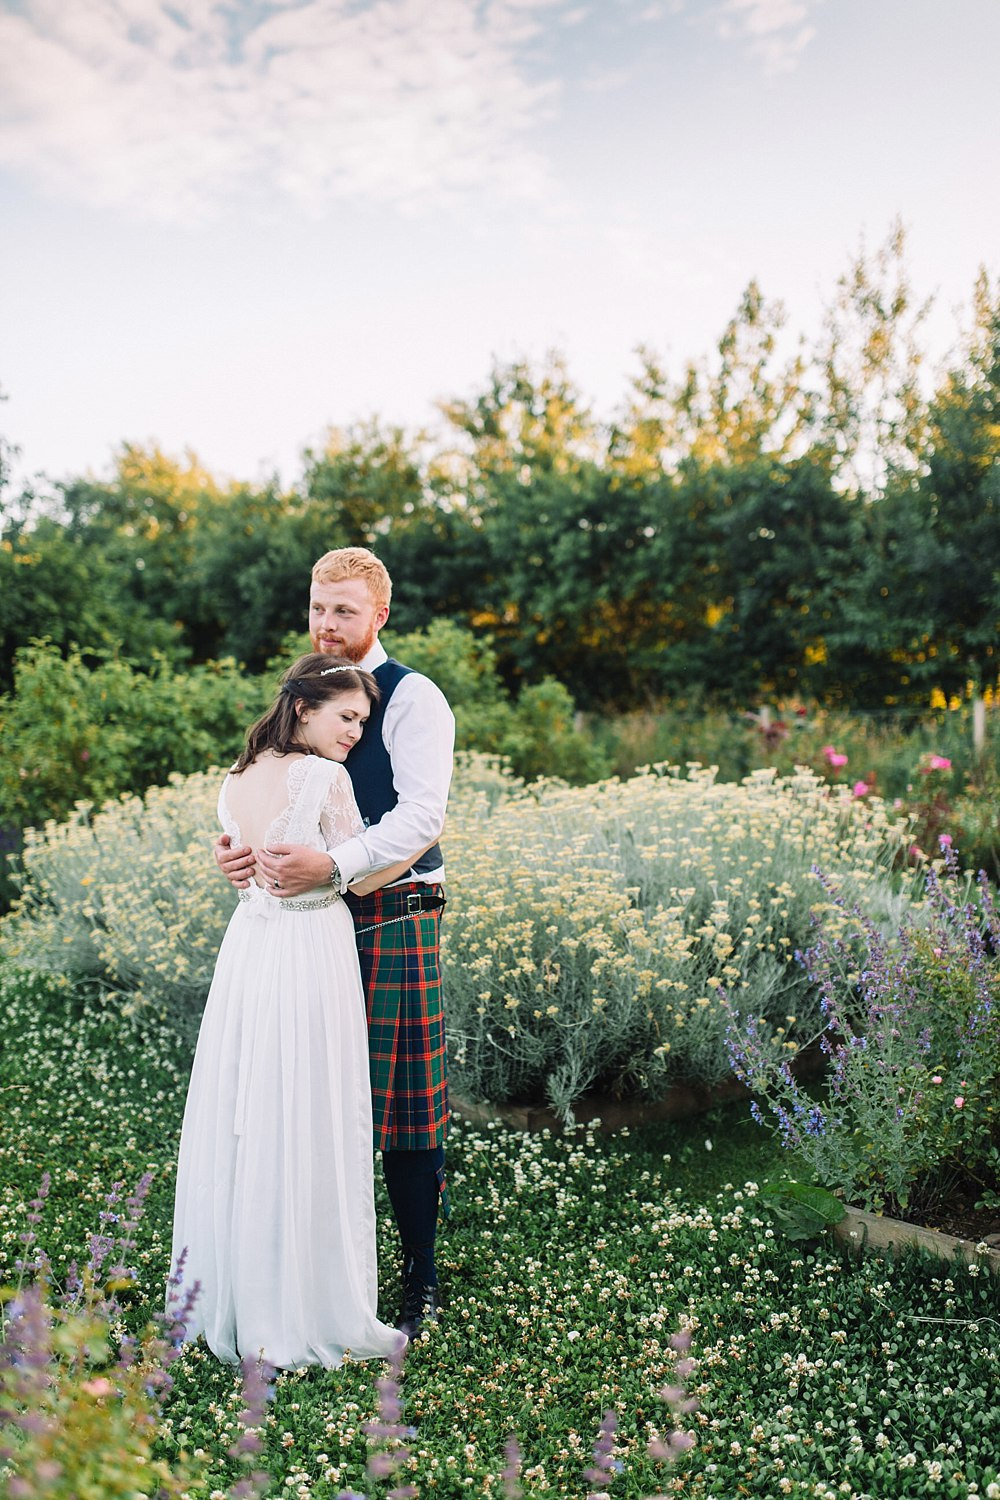 creative romantic relaxed light airy wedding photographers Scotland 12-4.jpg